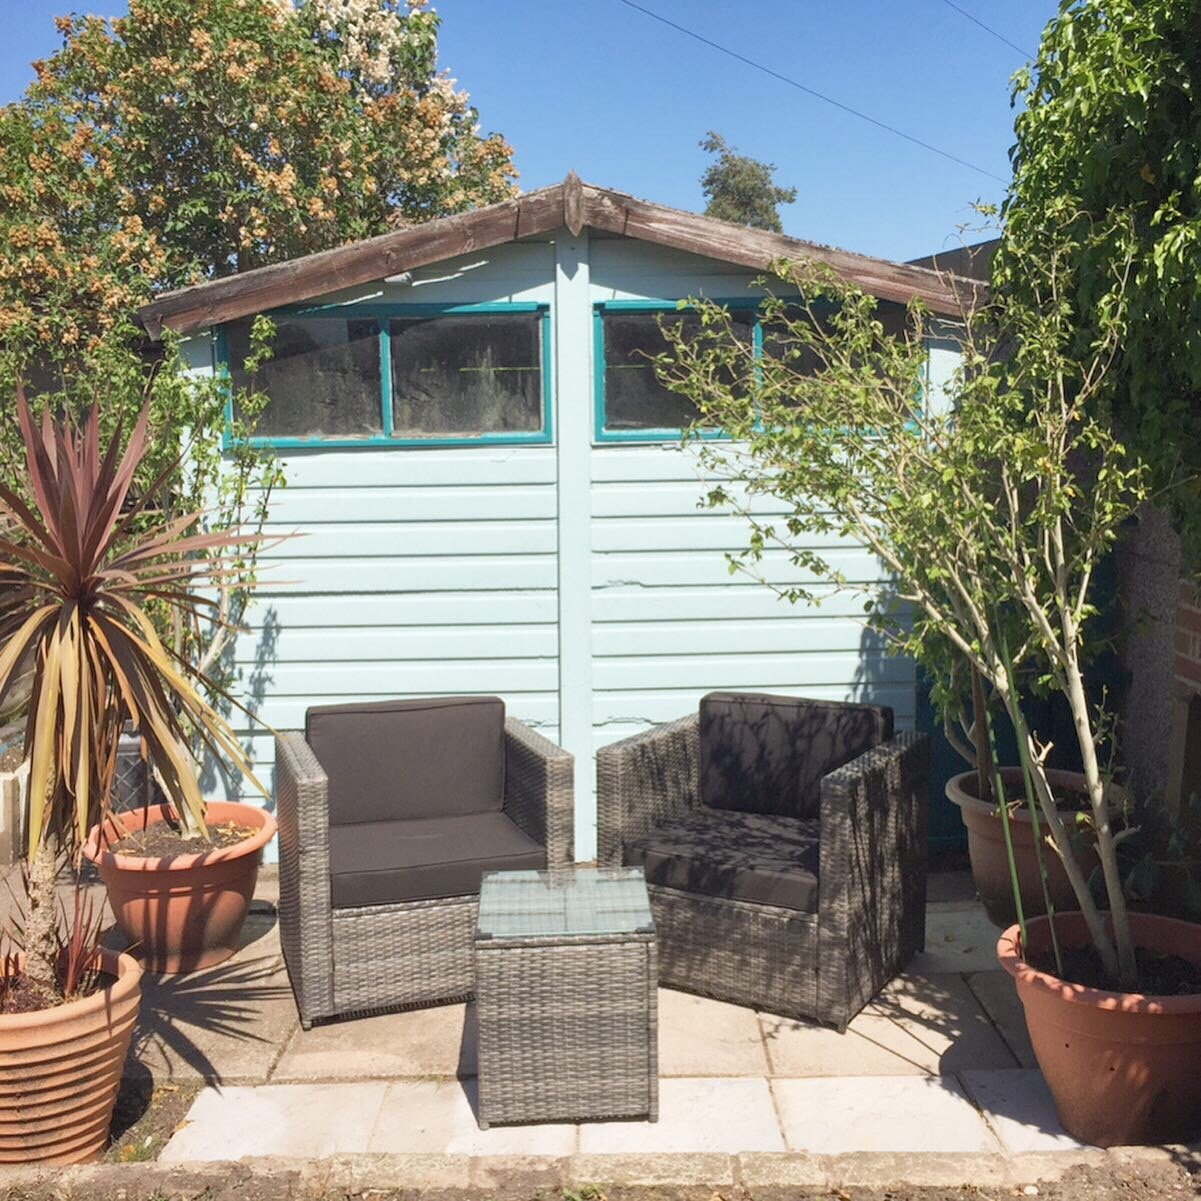 Two garden chairs and a table in front of a garden shed with potted trees